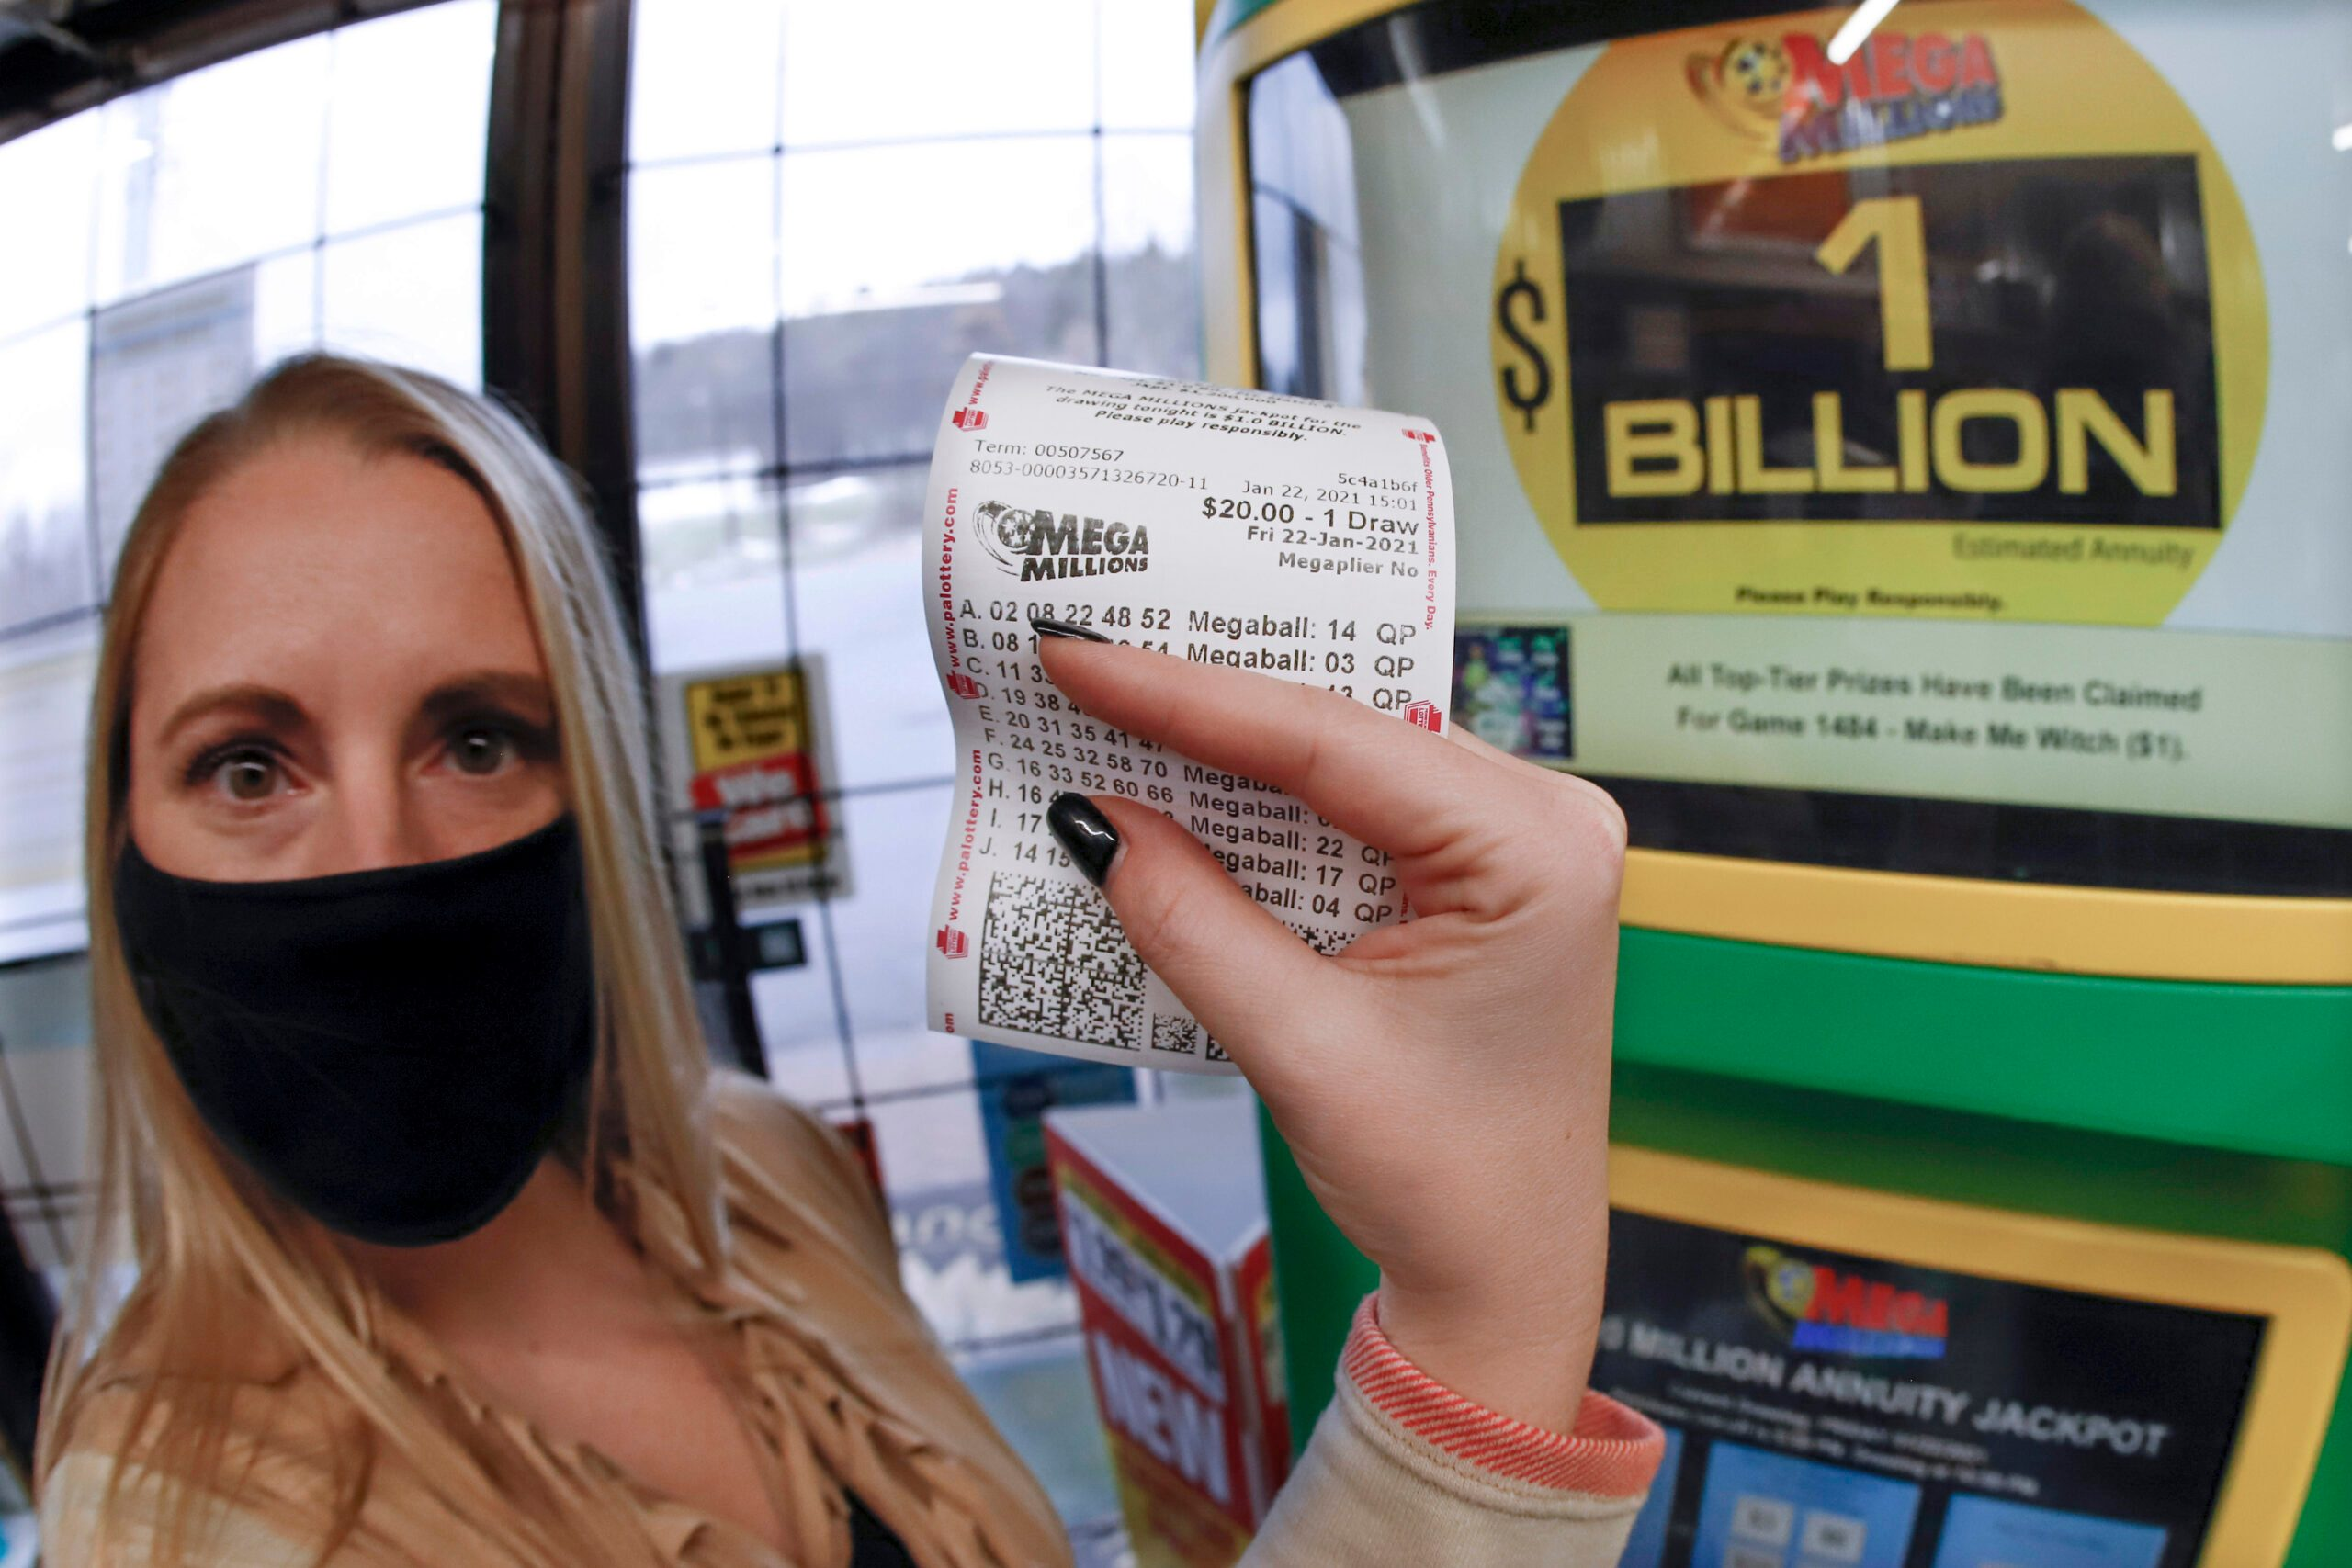 Michigan Mega Millions Ticket Wins $1 Billion Jackpot - snopes